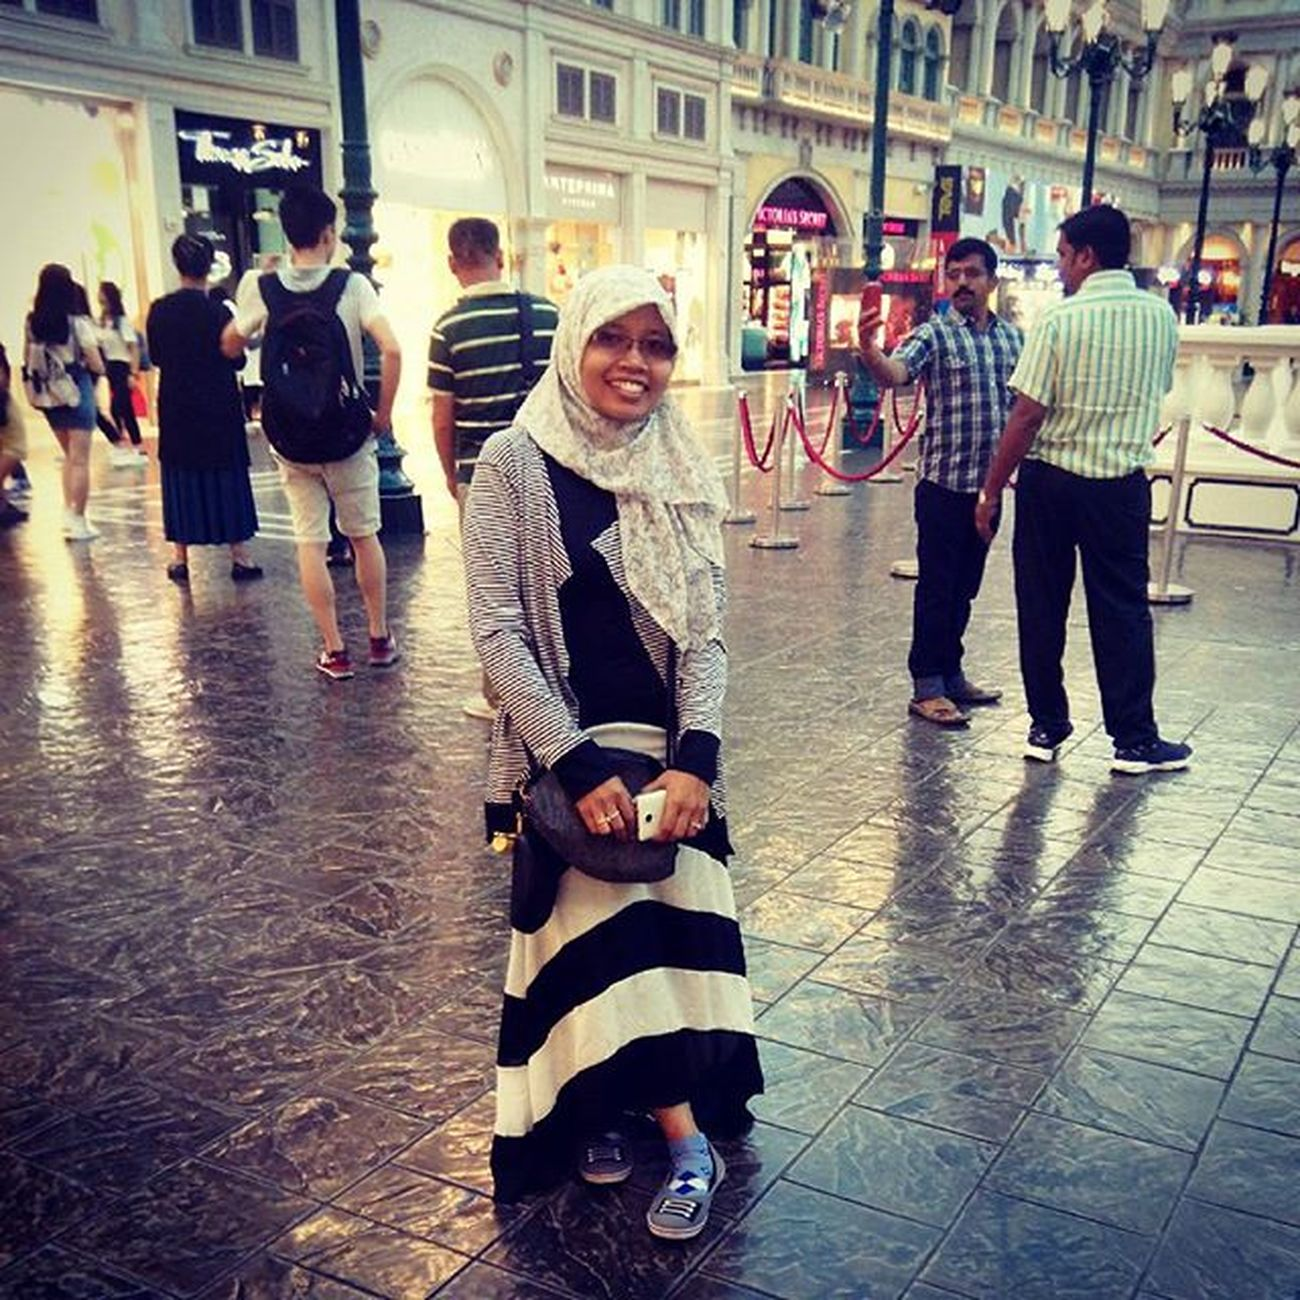 Venetian Macau Venetian Traveling Mbambungnekat backpacker treqx1 treqcapture treqq1 @treqandroid